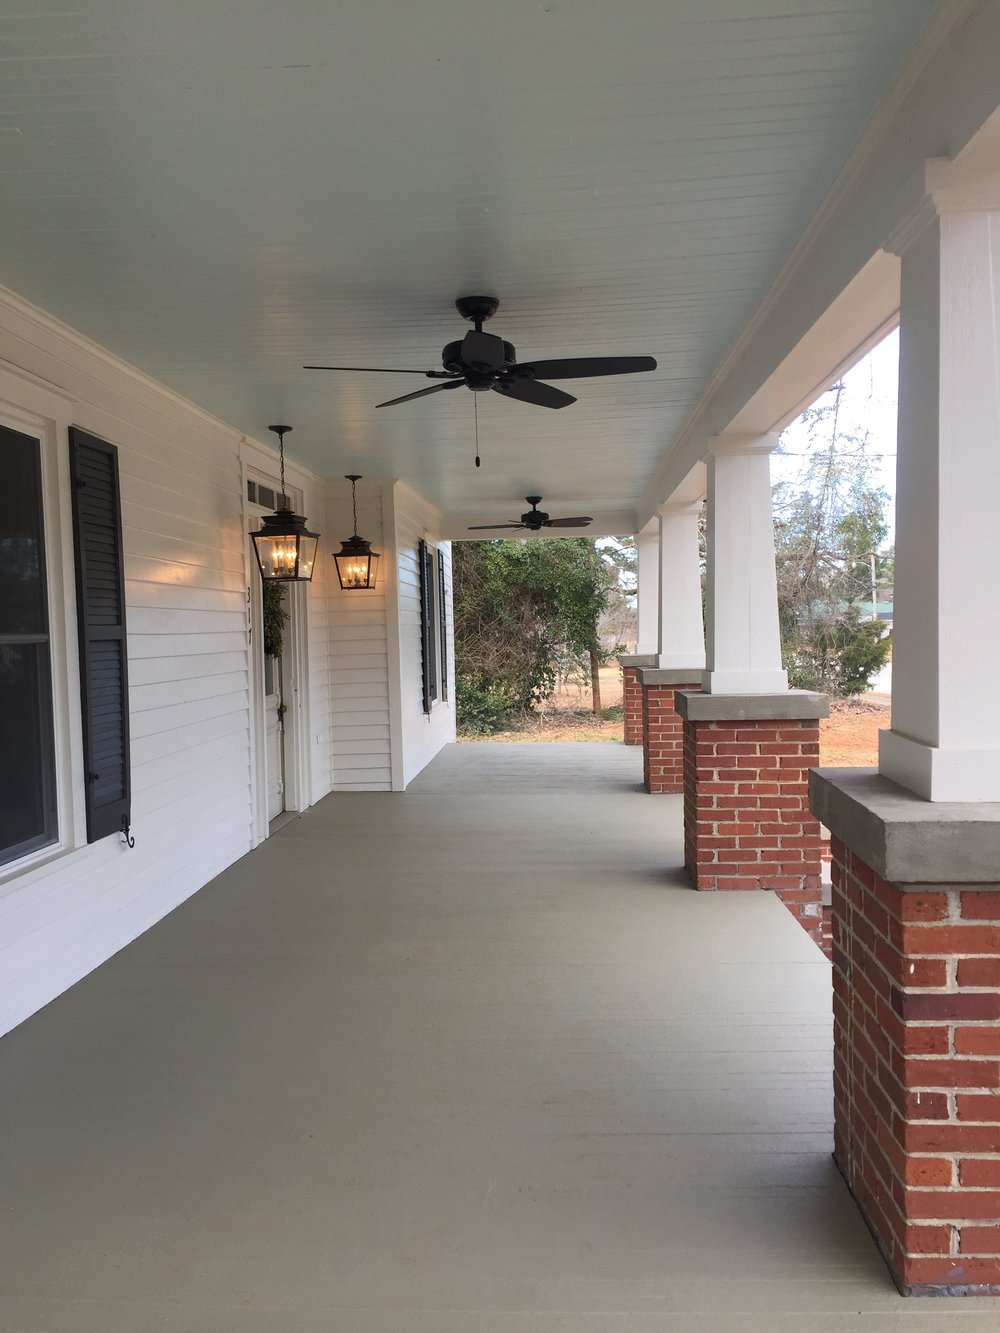 Shealy Front Porch long side view AFTER.jpg